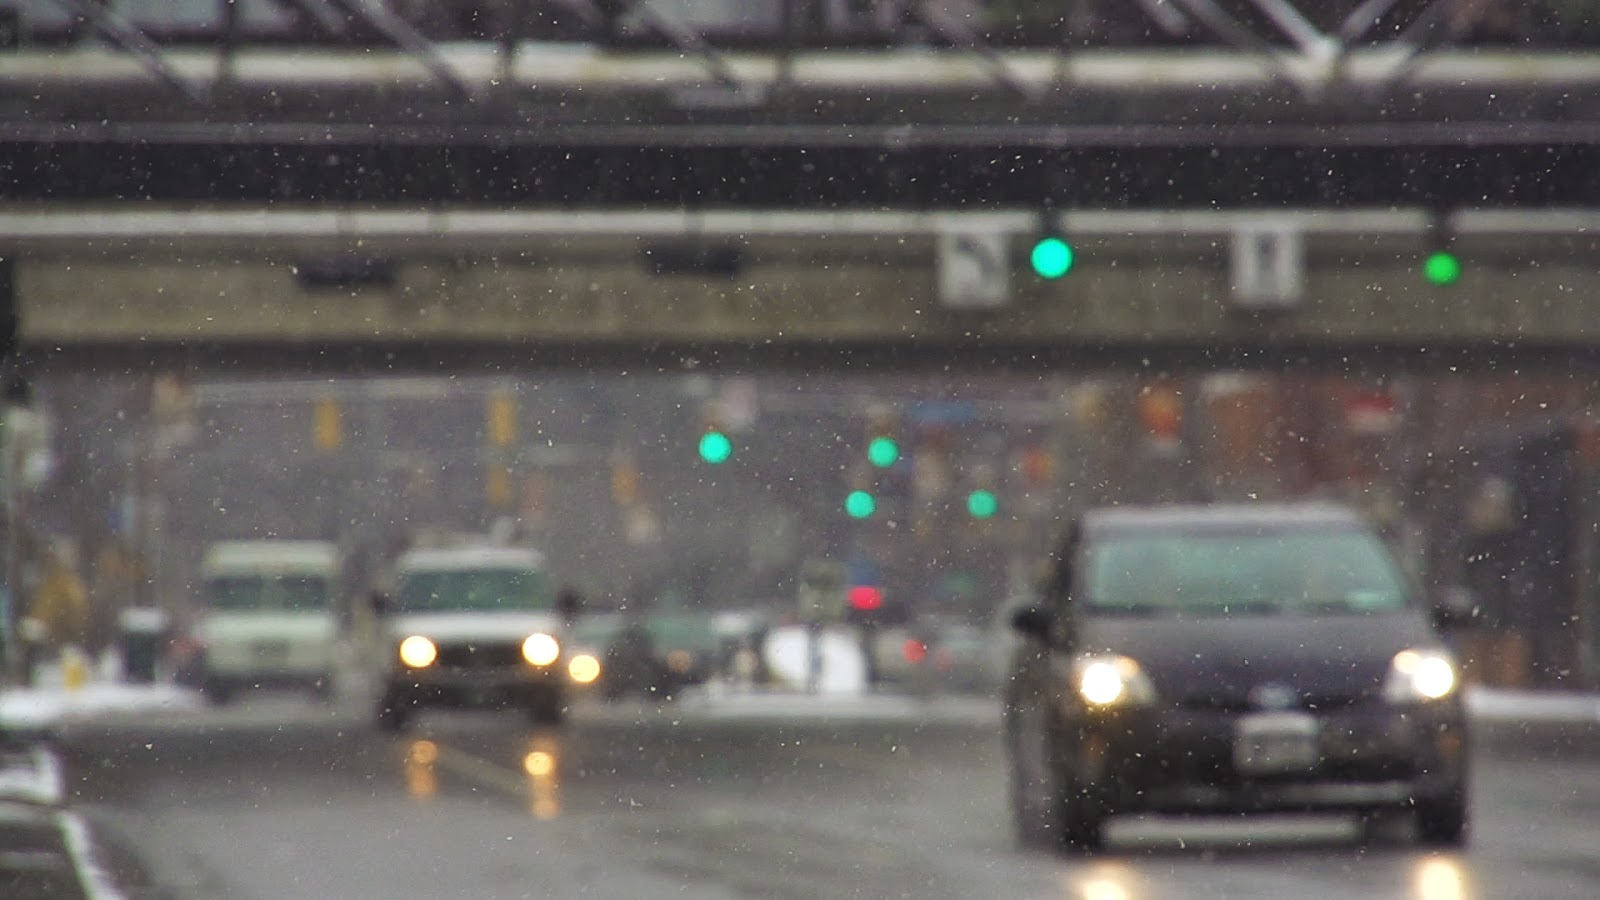 A still image from a stock video clip showing footage of cars driving in the winter.